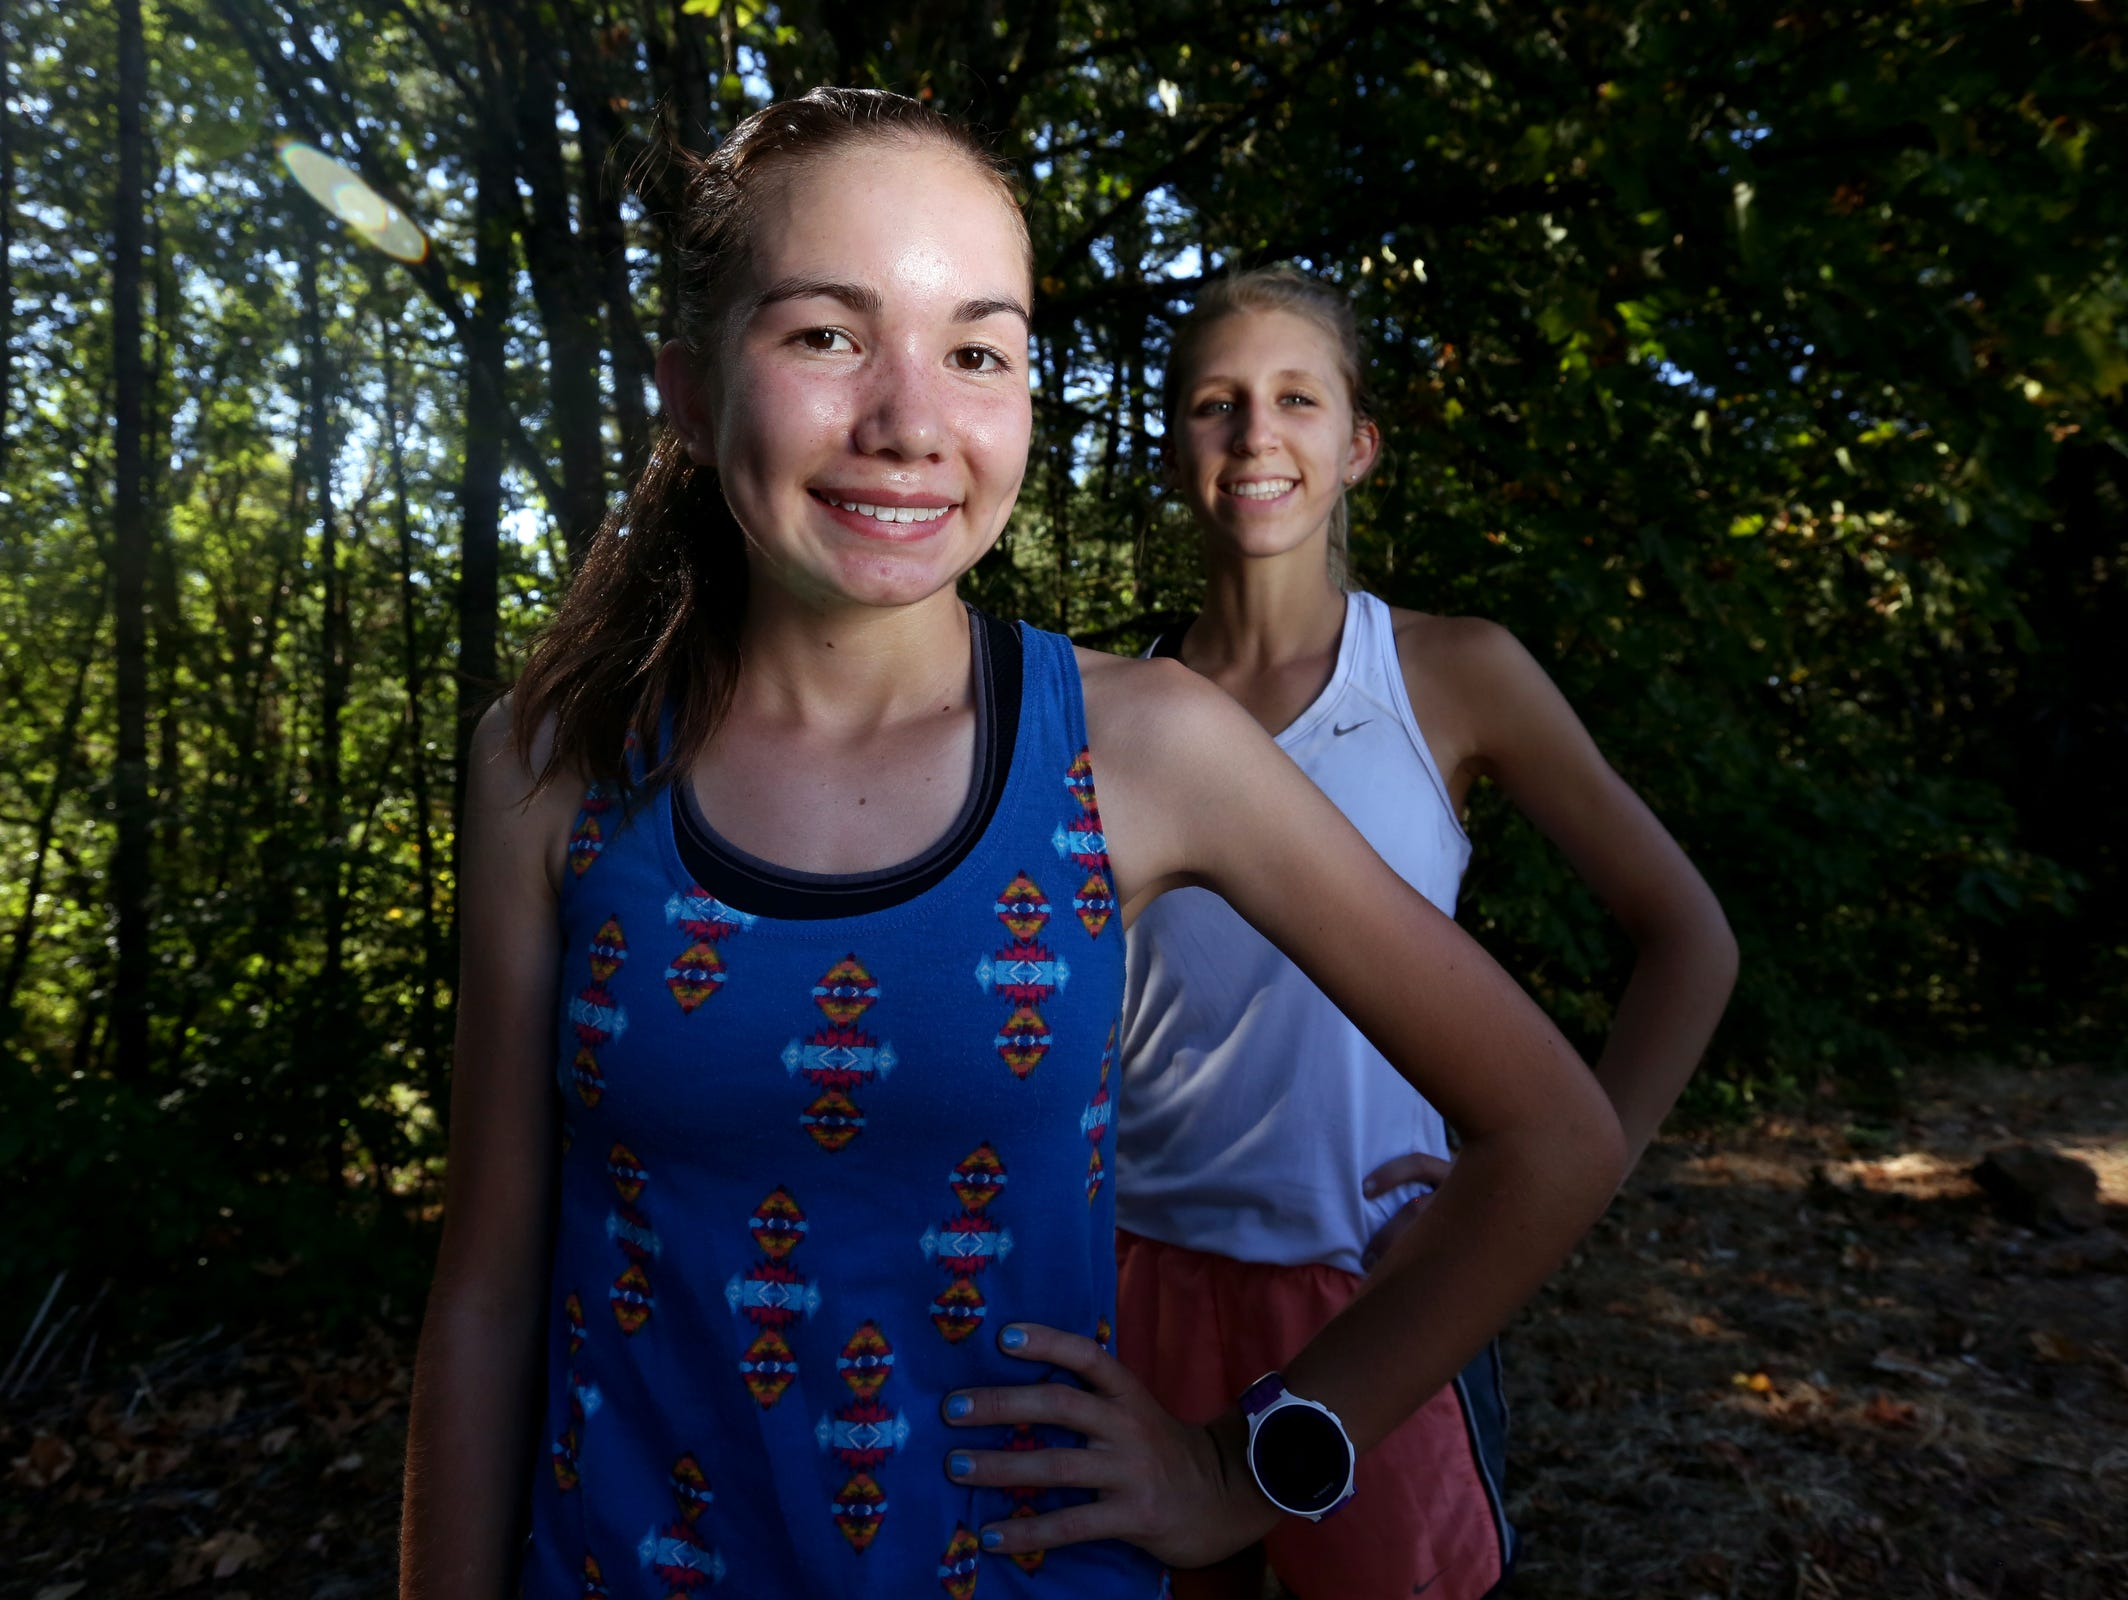 Sophomore Ginger Murnieks, left, and junior Kaylee Mitchell, cross country runners, stand for a portrait at Sprague High School in Salem on Wednesday, Aug. 24, 2016.